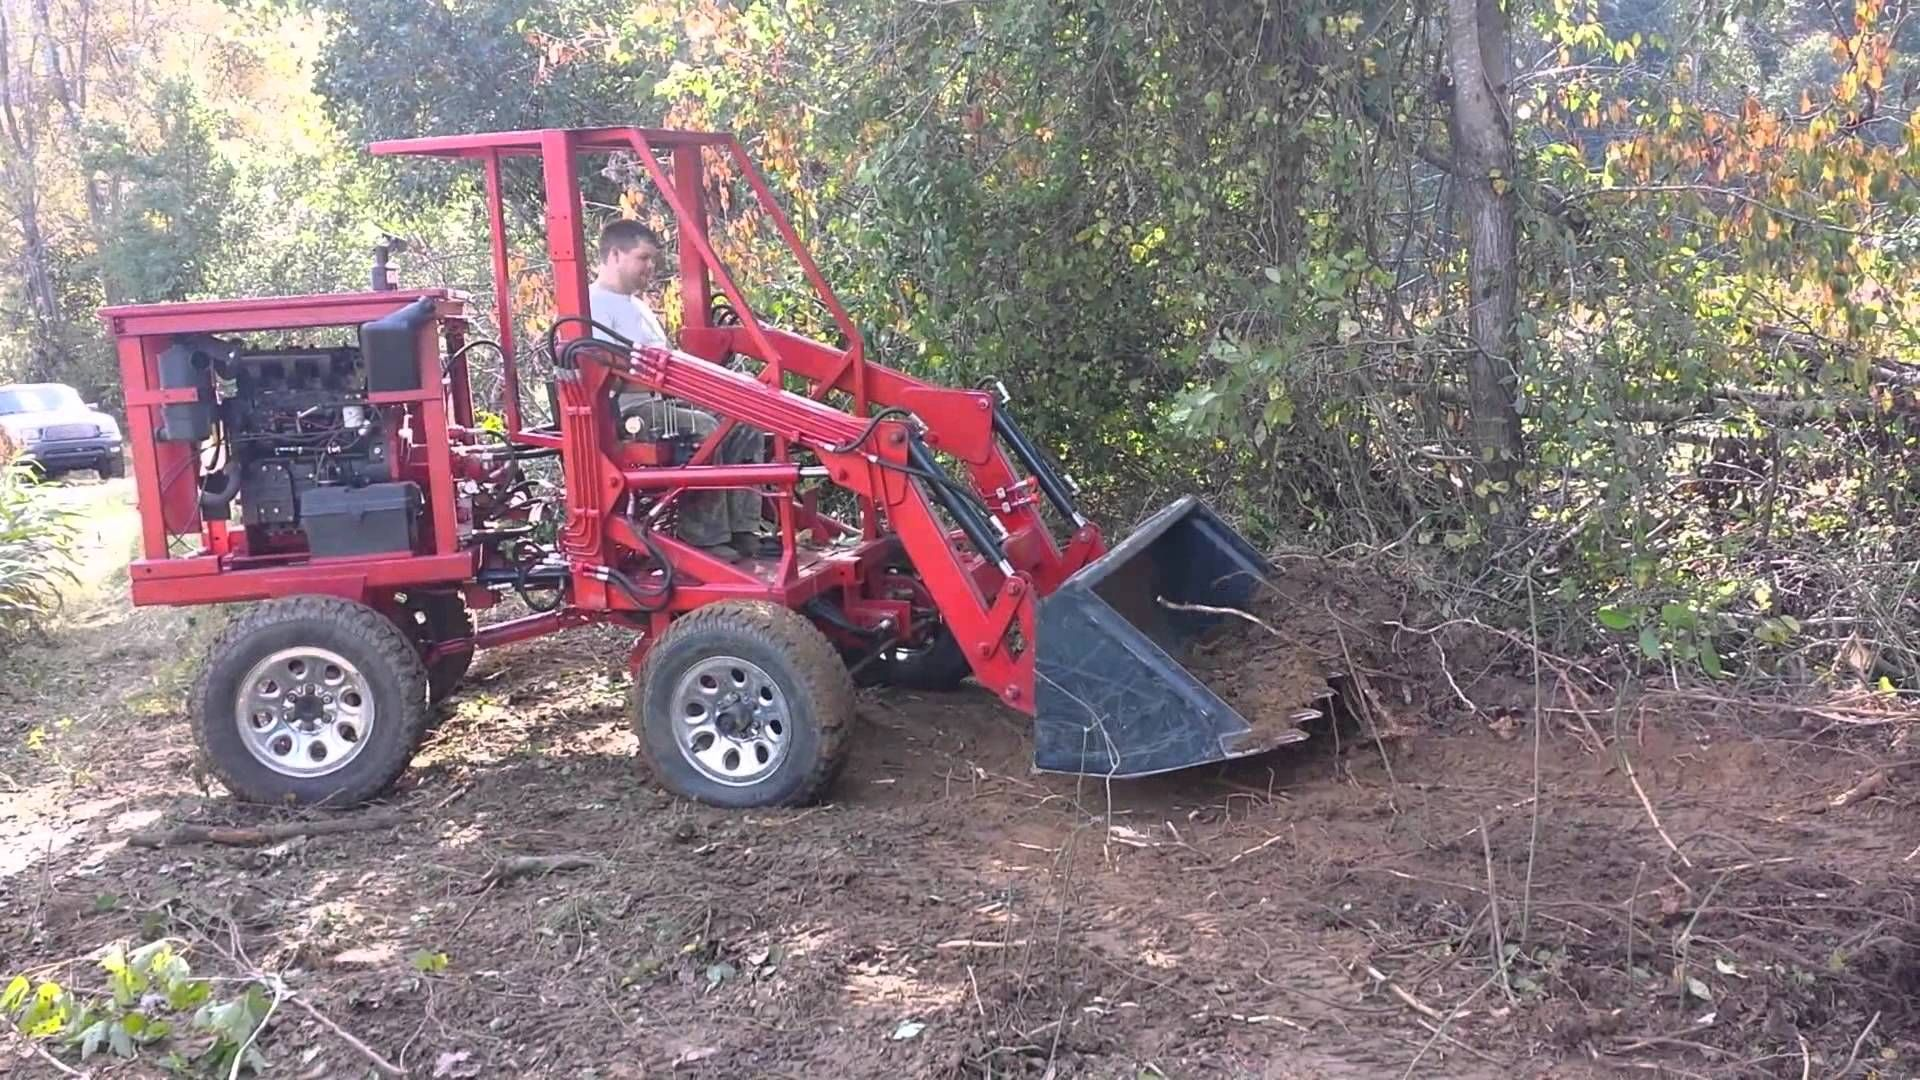 articulating tractor front end loader clearing brush homemade homemade tractors. Black Bedroom Furniture Sets. Home Design Ideas